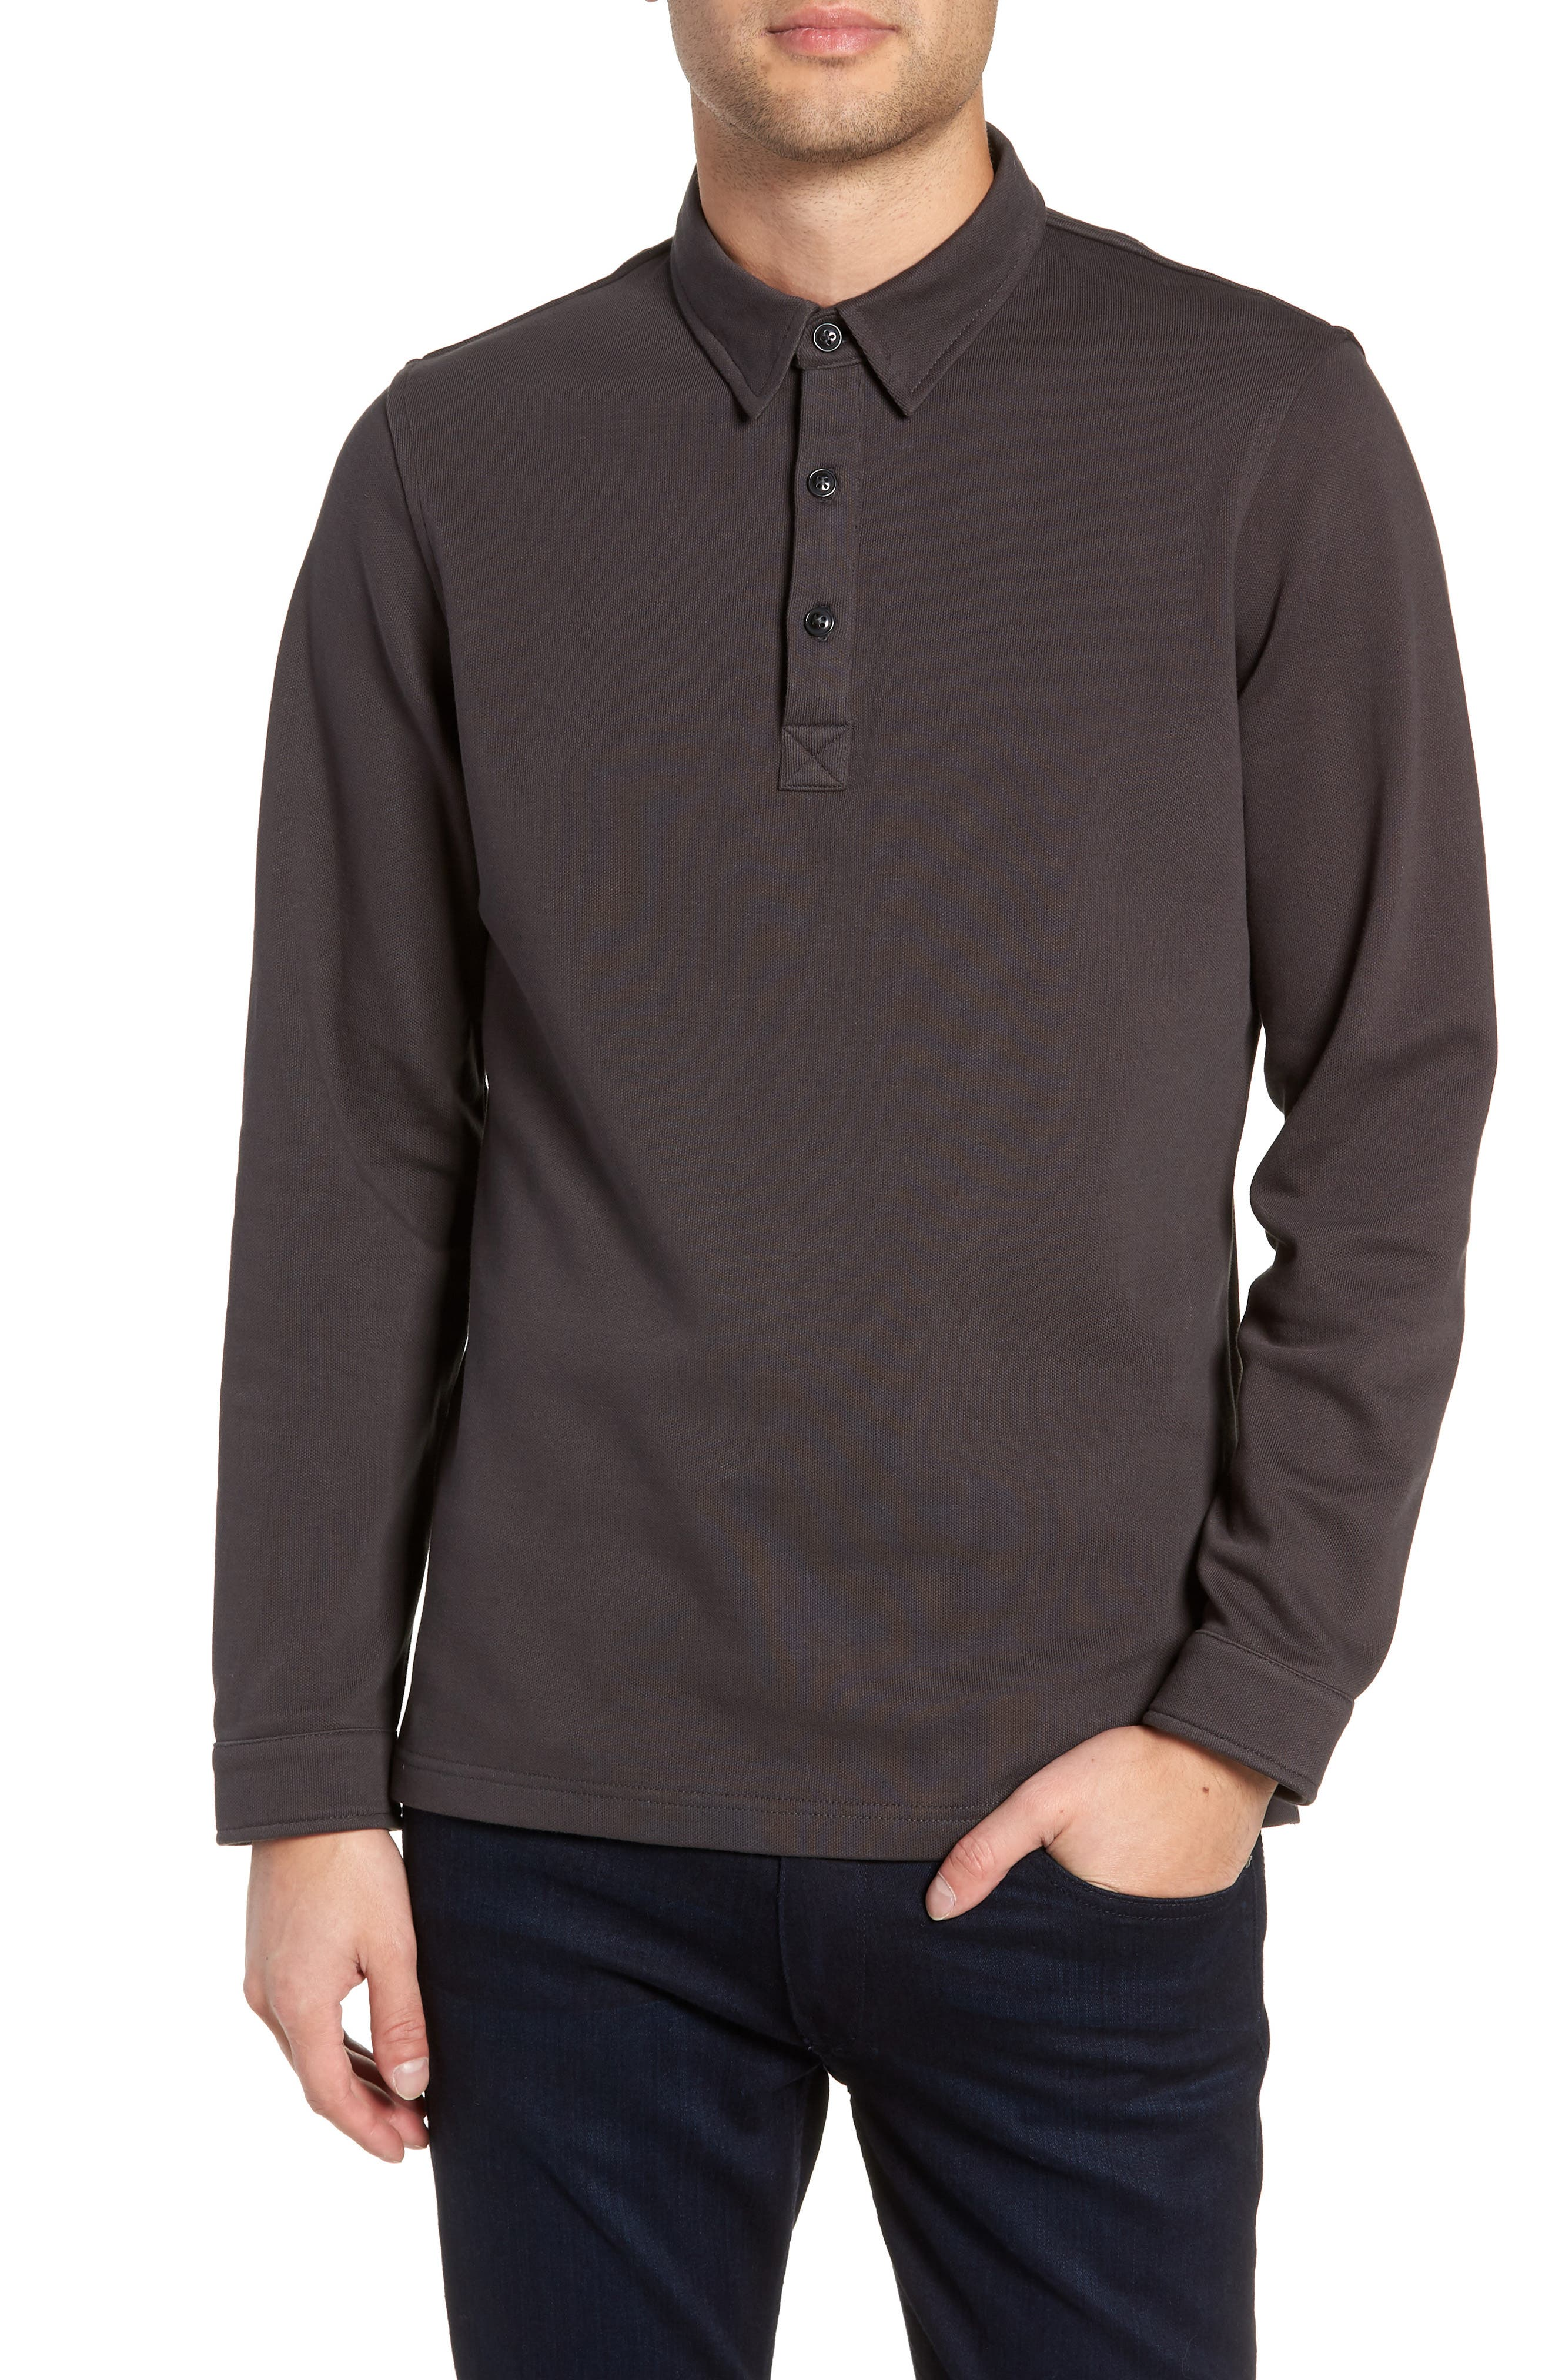 Texture Trim Fit Long Sleeve Polo,                         Main,                         color, 081